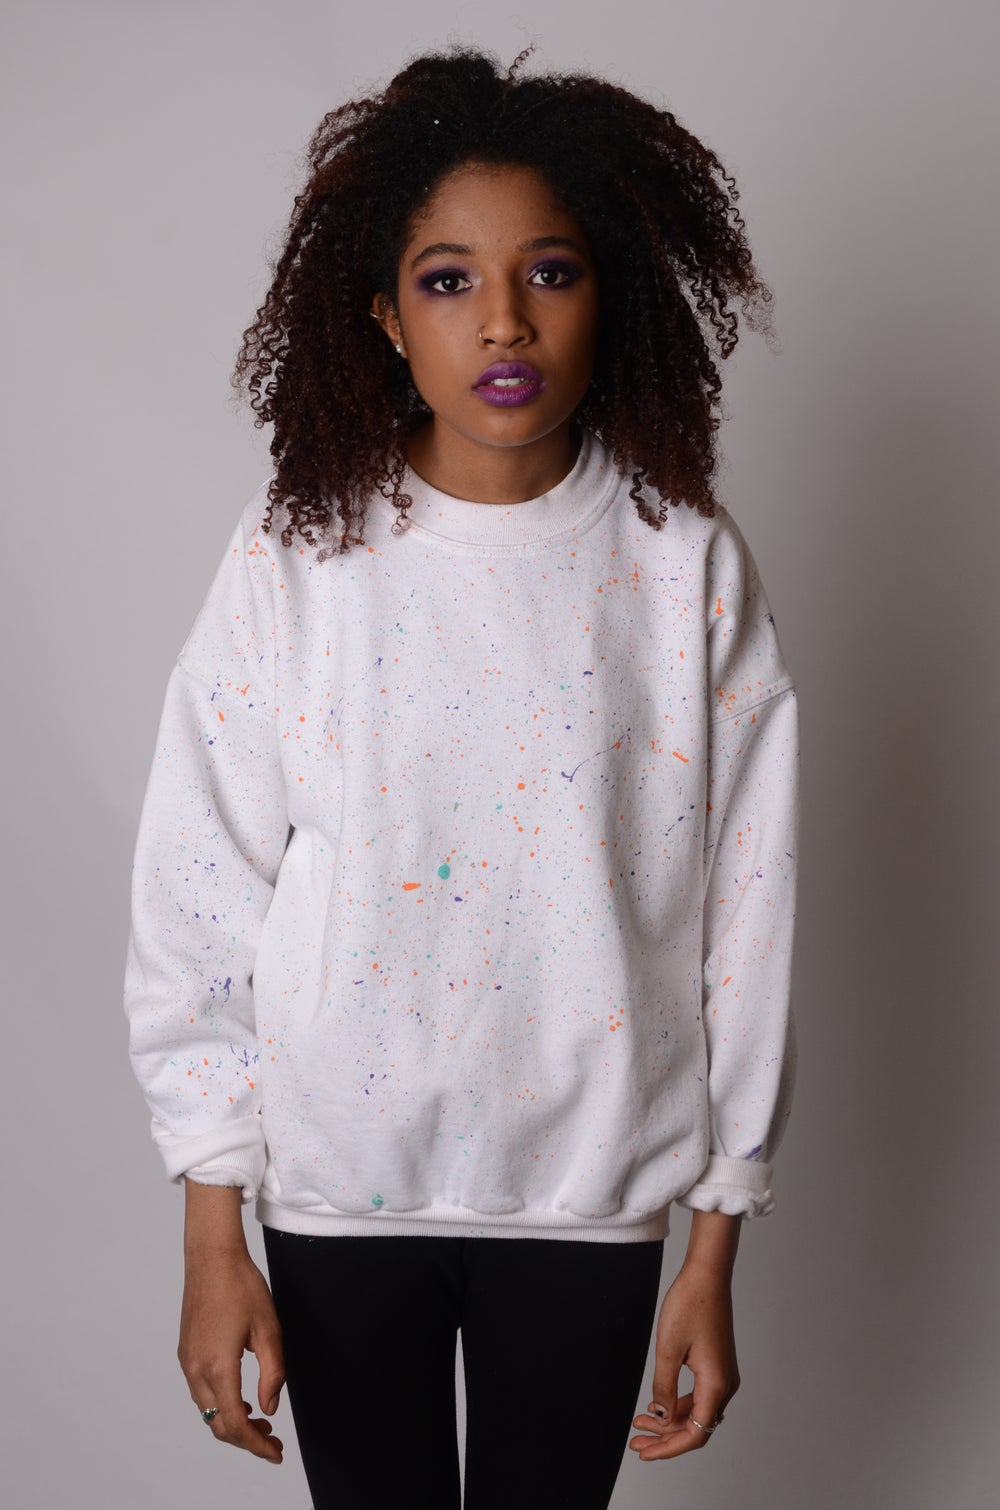 Image of SALE Nebula Unisex white splatter crewneck Sweatshirt